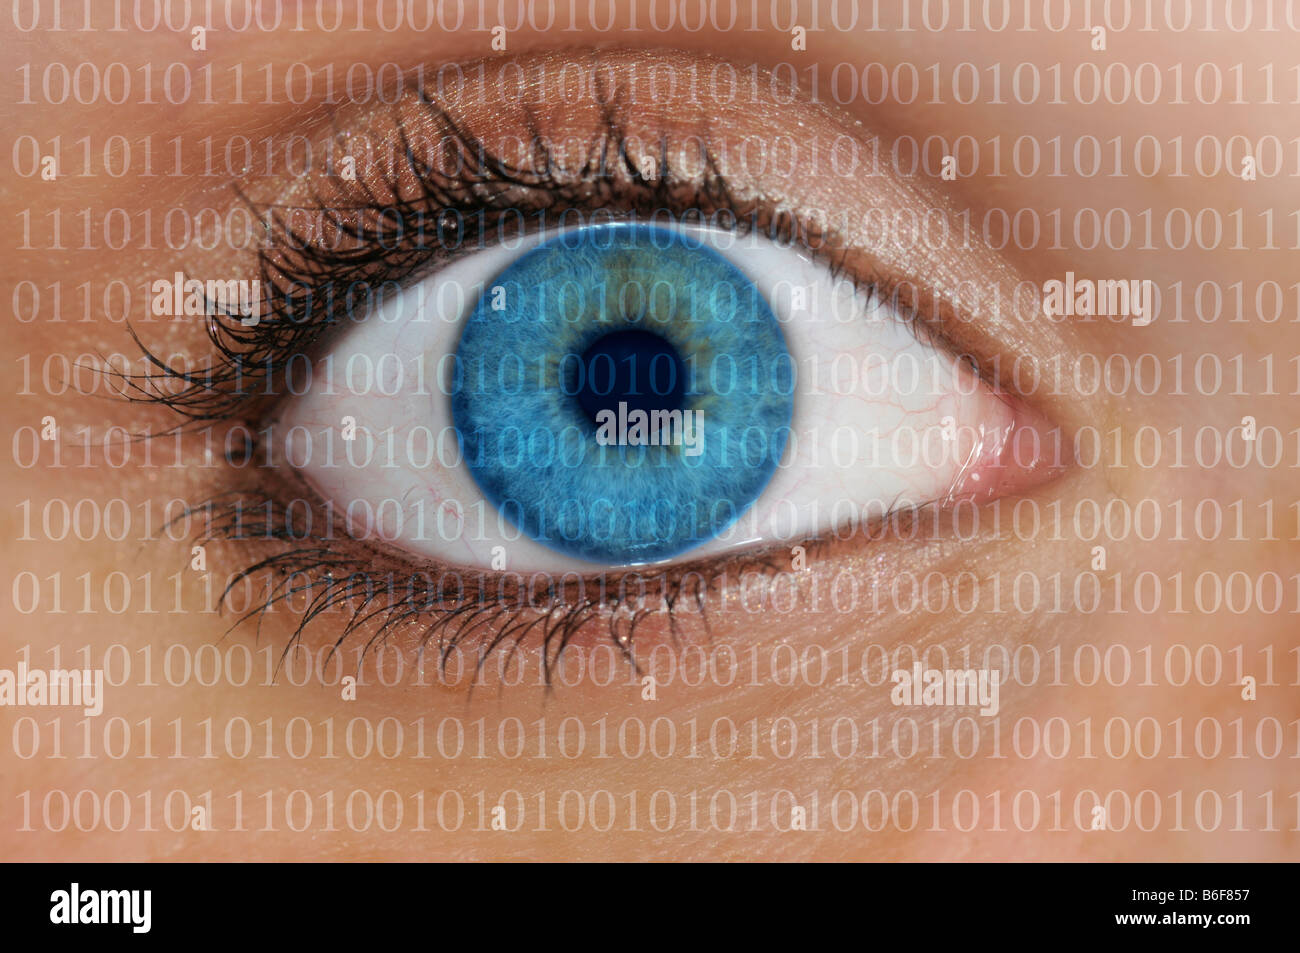 Close-up of binary code covering an eye with a light blue iris, symbolizing the collection of personal data Stock Photo